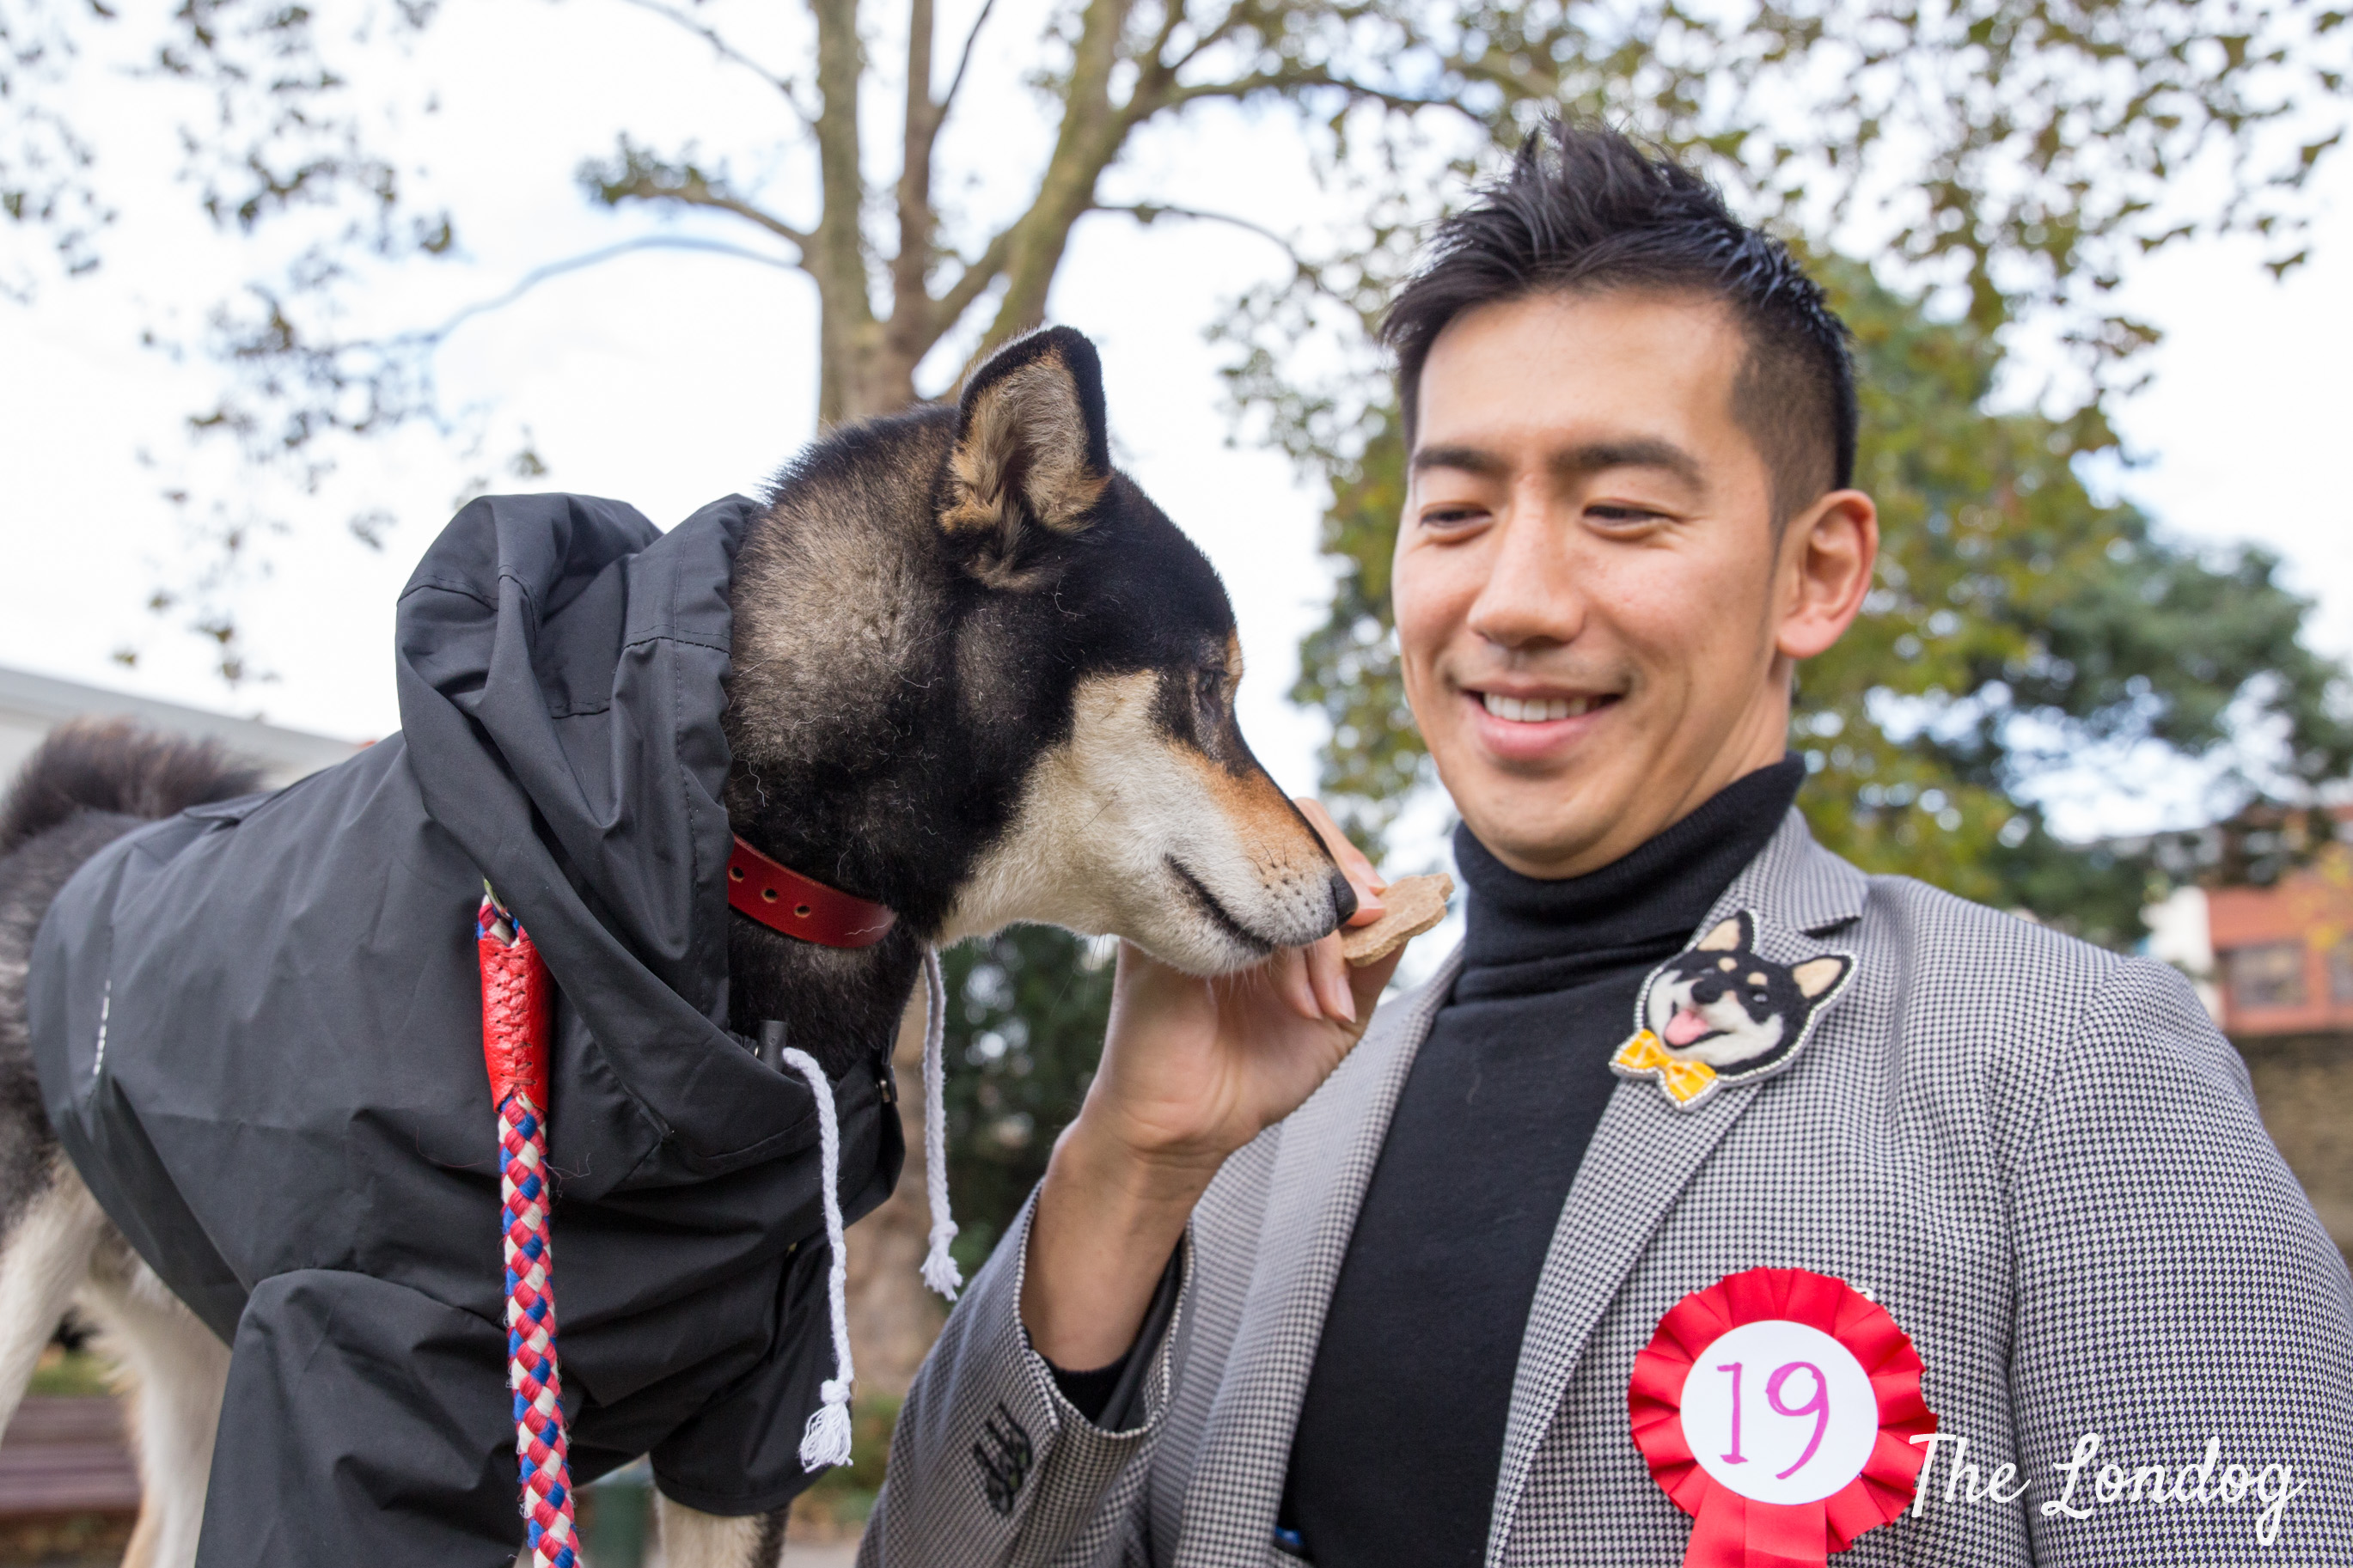 Shiba Inu looks at treat his owner, wearing a shiba inu brooch, holds in his hand before STRUZ Charity Canine Fashion Show start